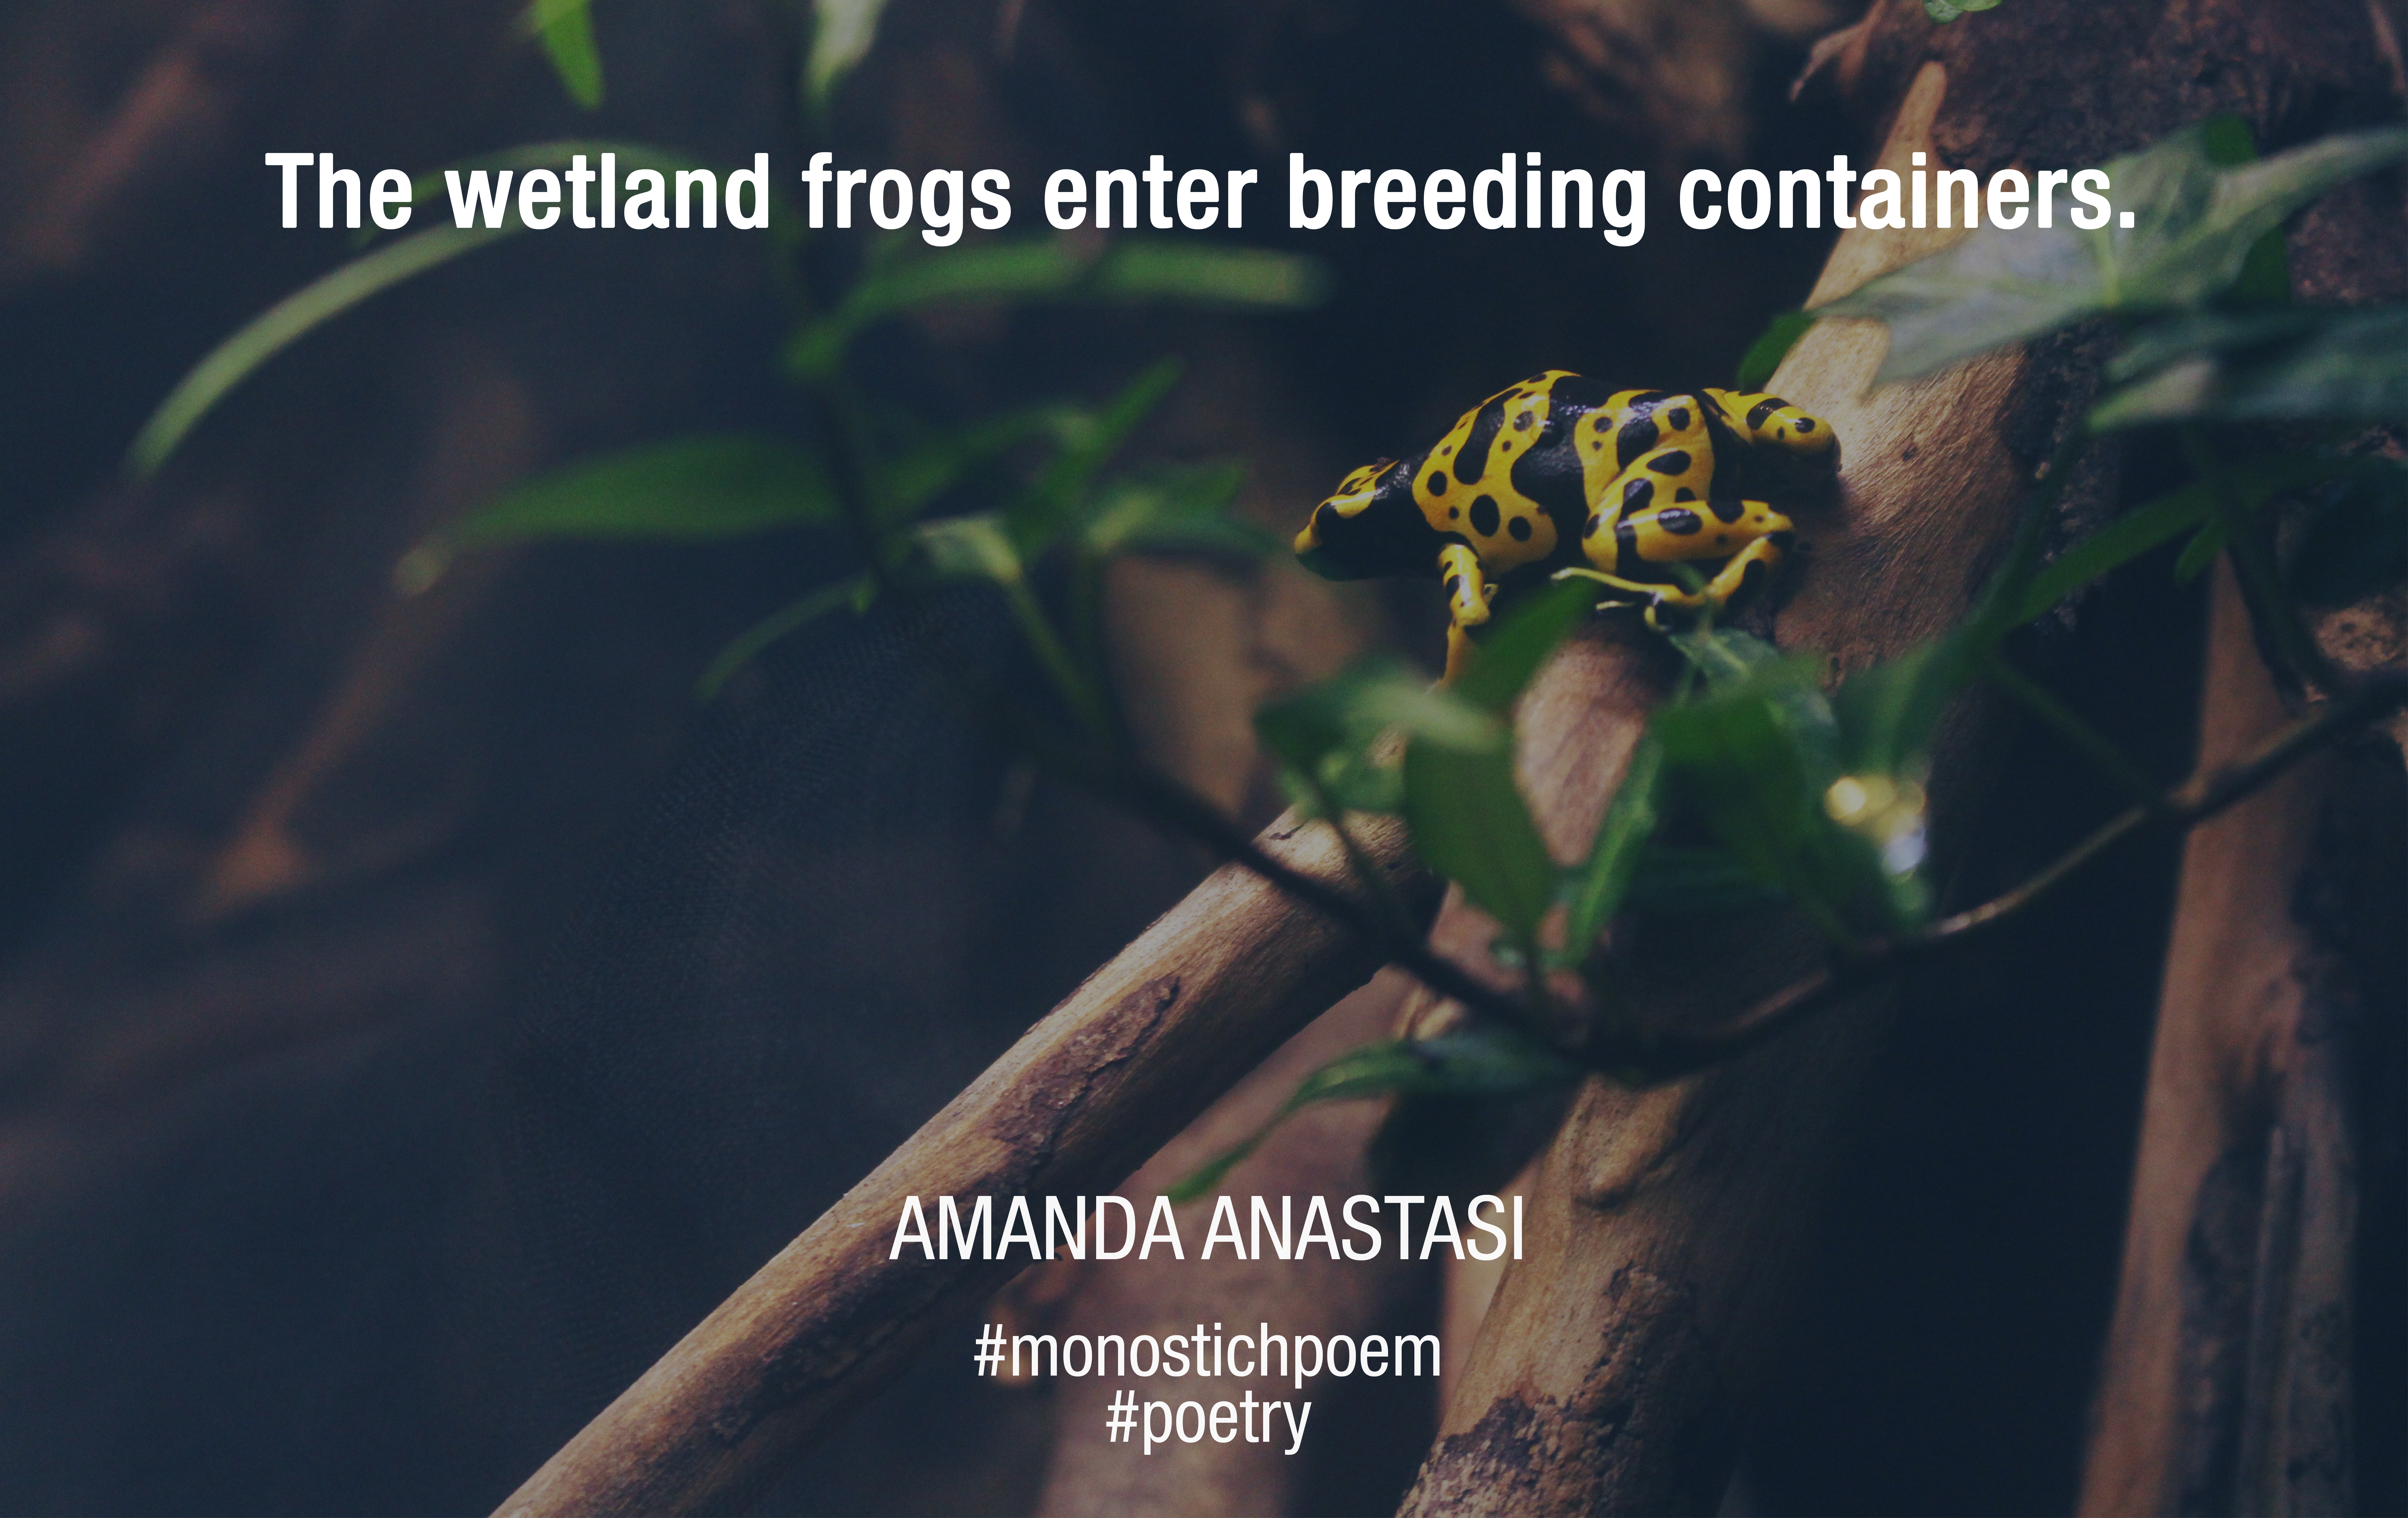 The wetland frogs enter breeding containers.